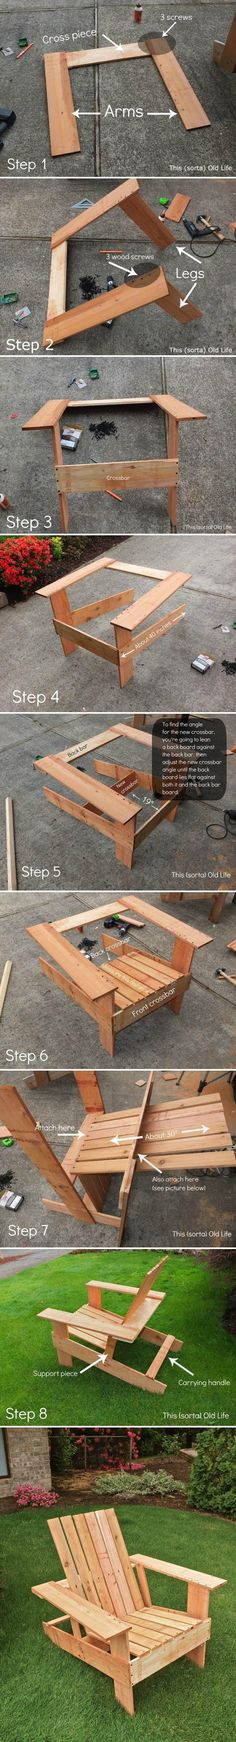 The best garden chair ever!Easy to make and efficient.